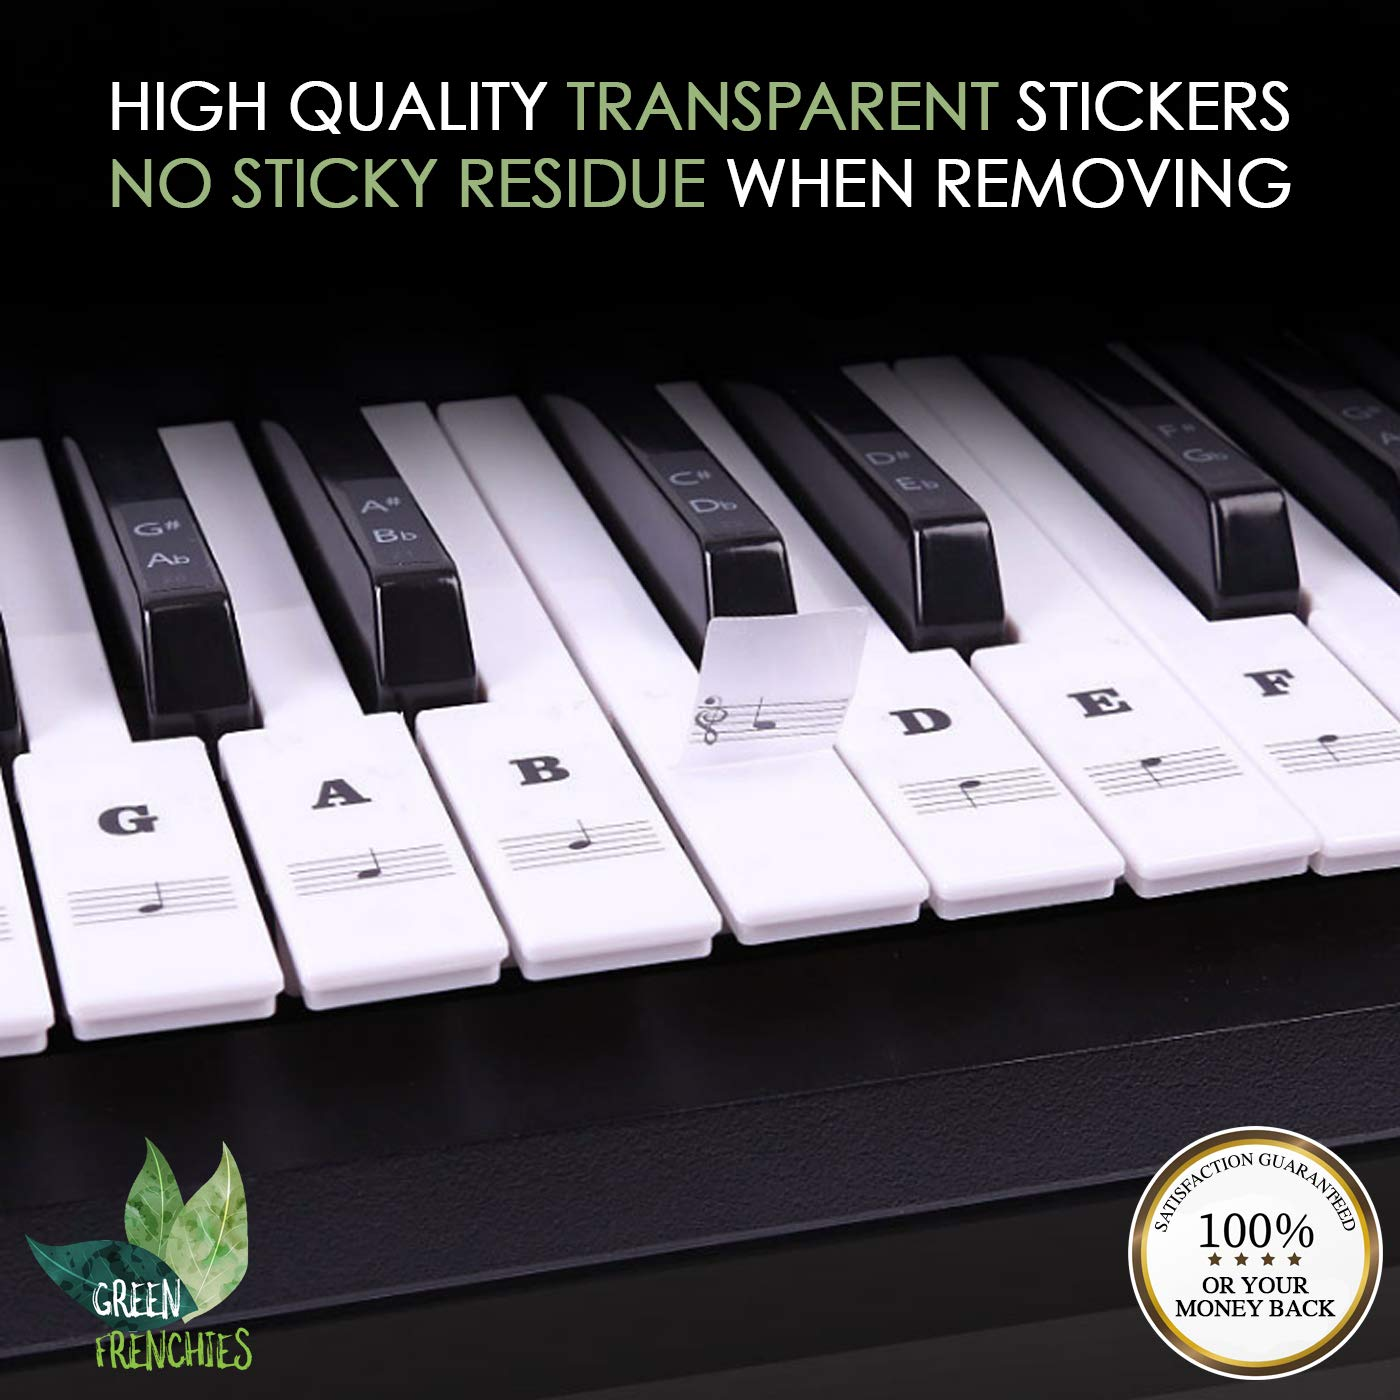 Green Frenchies G.F. Piano Keyboard Stickers, Transparent Stickers for White and Black Keys, Removable Stickers for 37, 49, 54, 61, and 88 Keys with Instructions by Green Frenchies (Image #2)